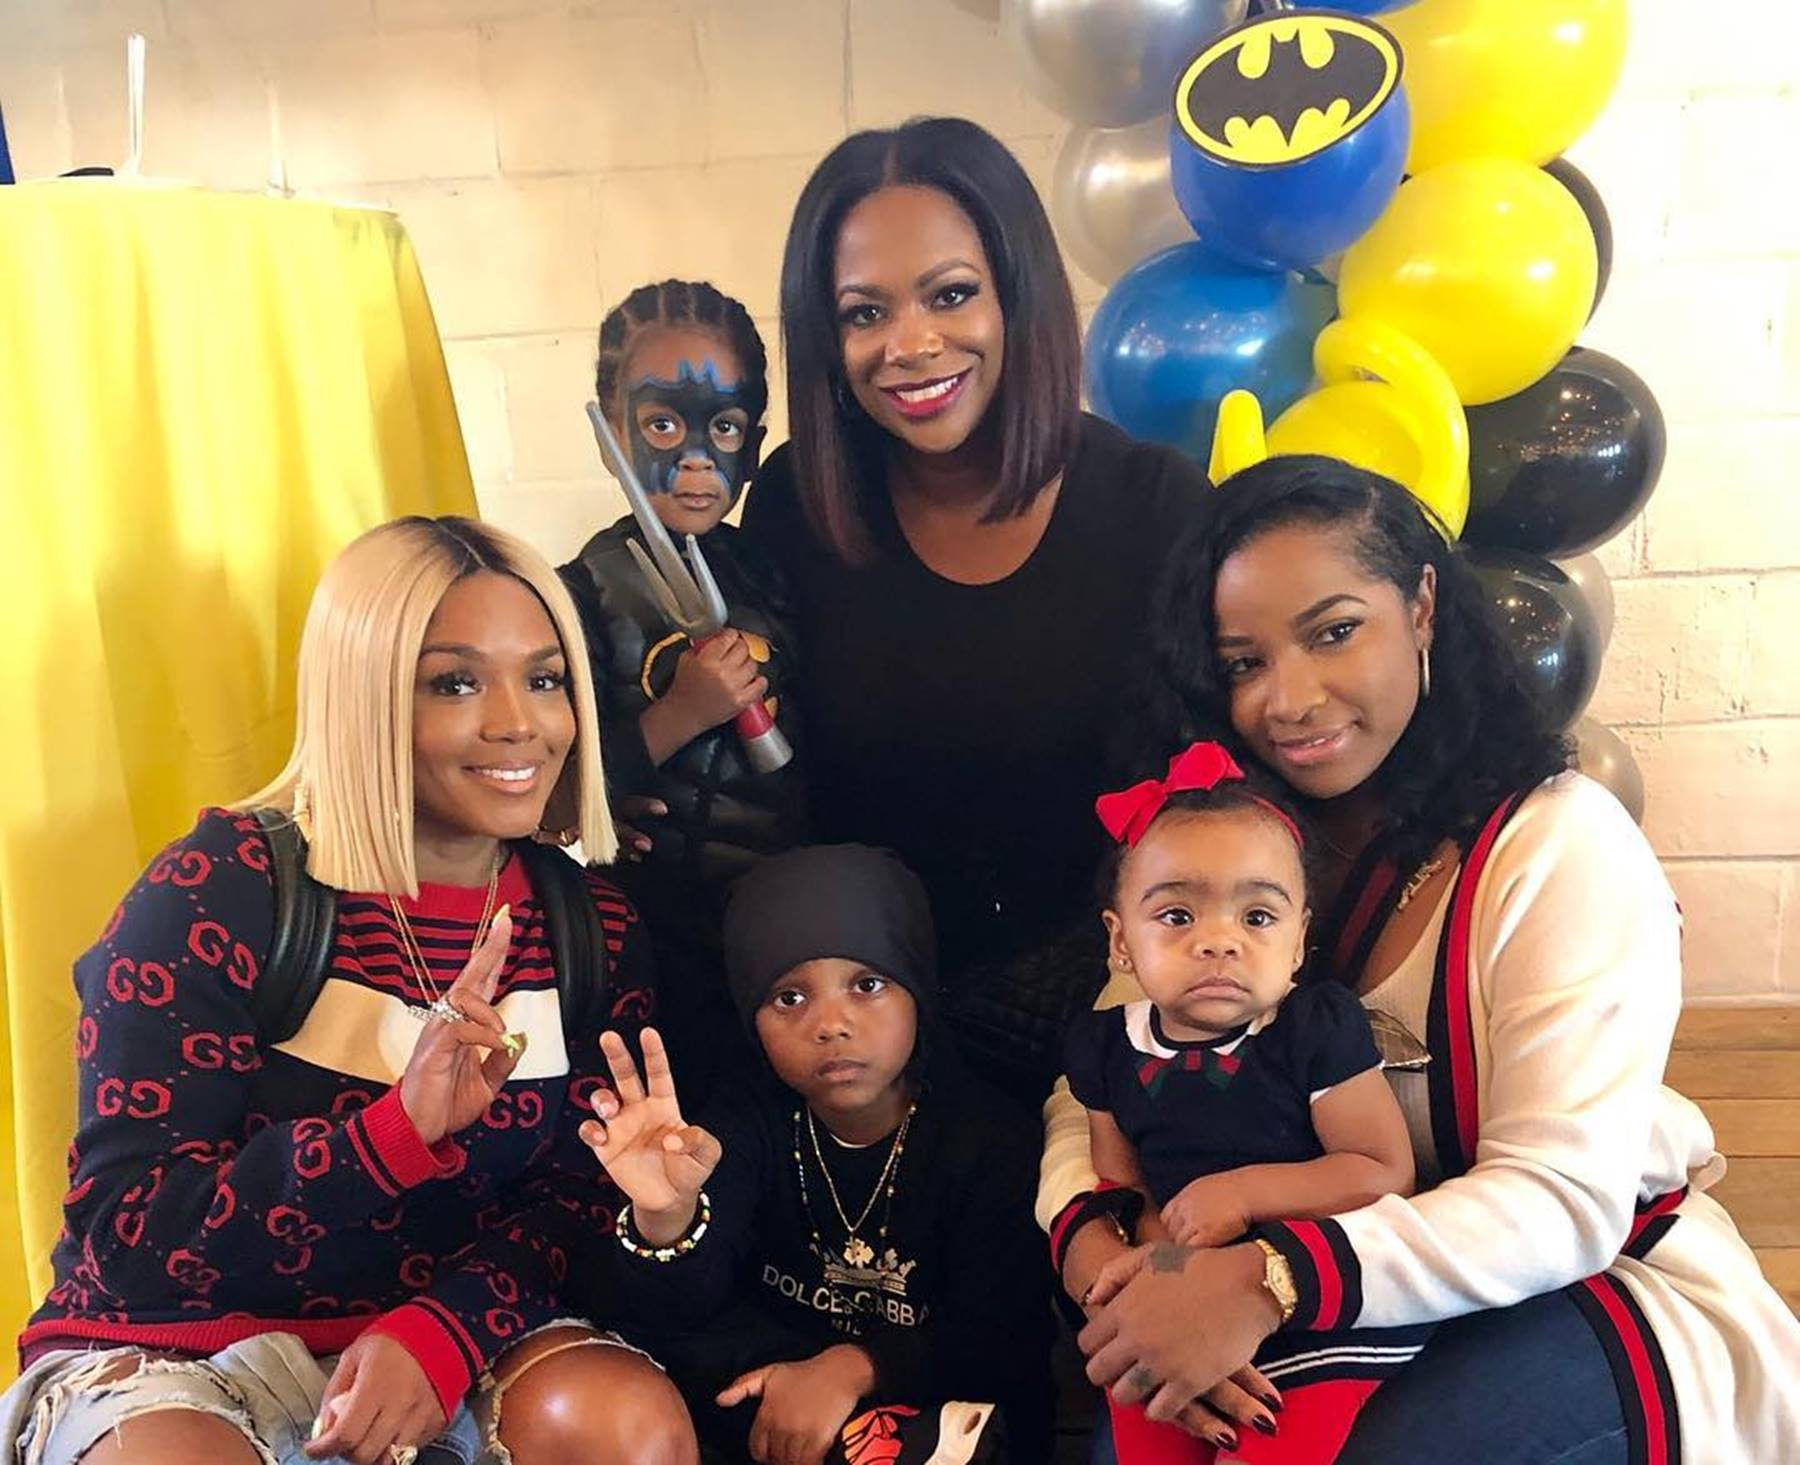 Kandi Burruss Offers Her Gratitude To Everyone Who Came To Celebrate Her Son's Birthday And Shares More Sweet Photos From The Party